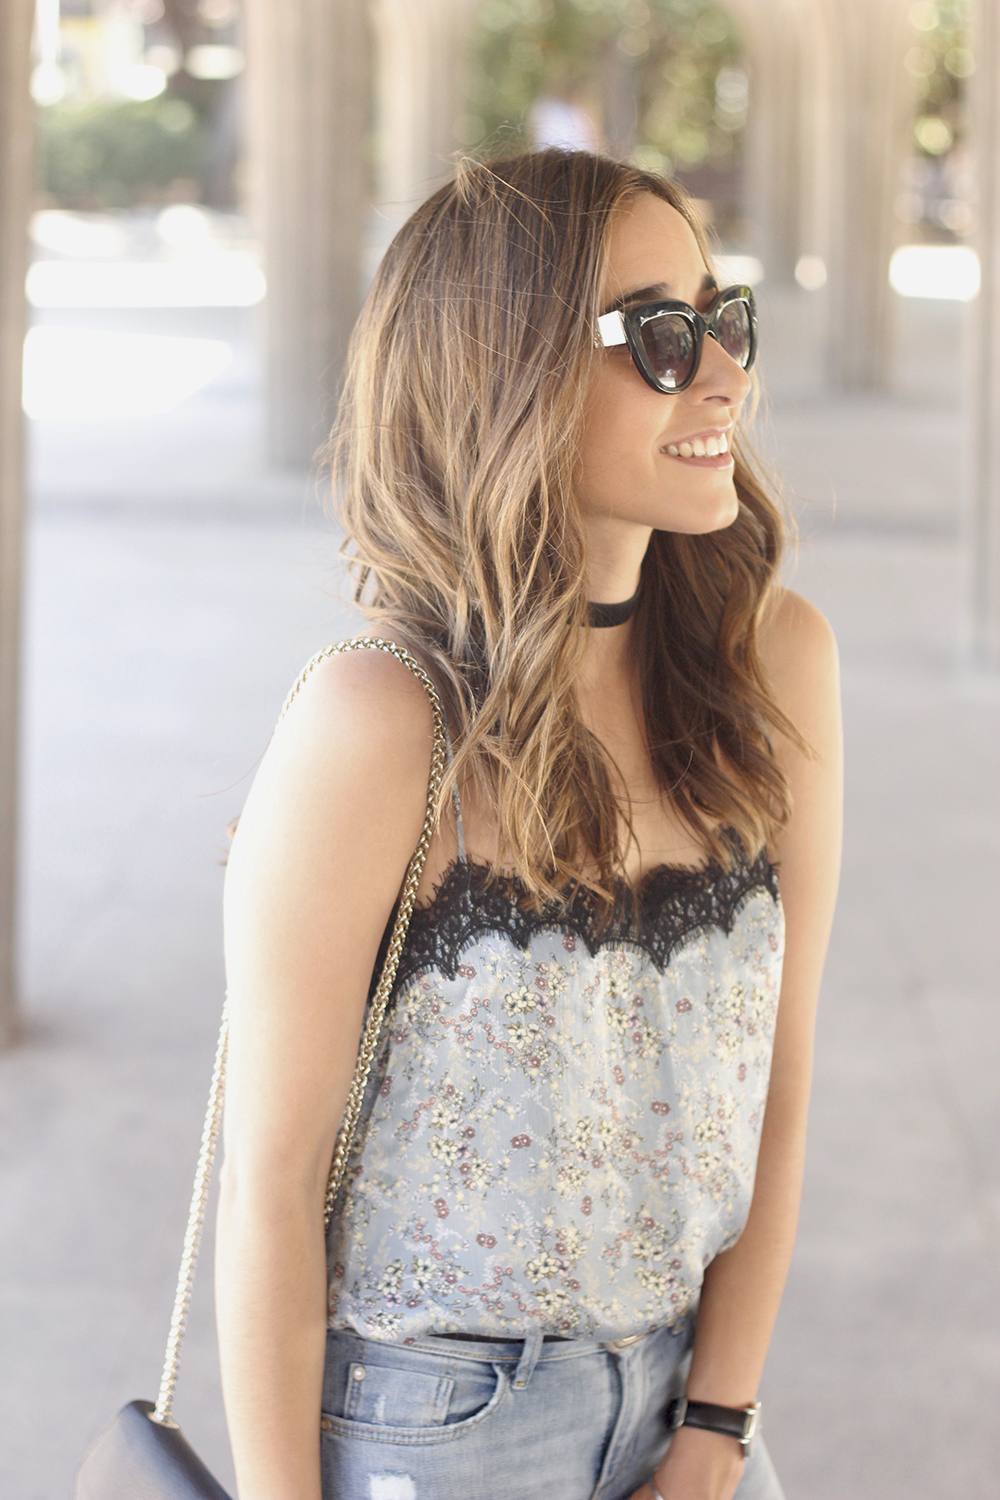 Lace top with skinny jeans heels summer outfit fashion style accesories14